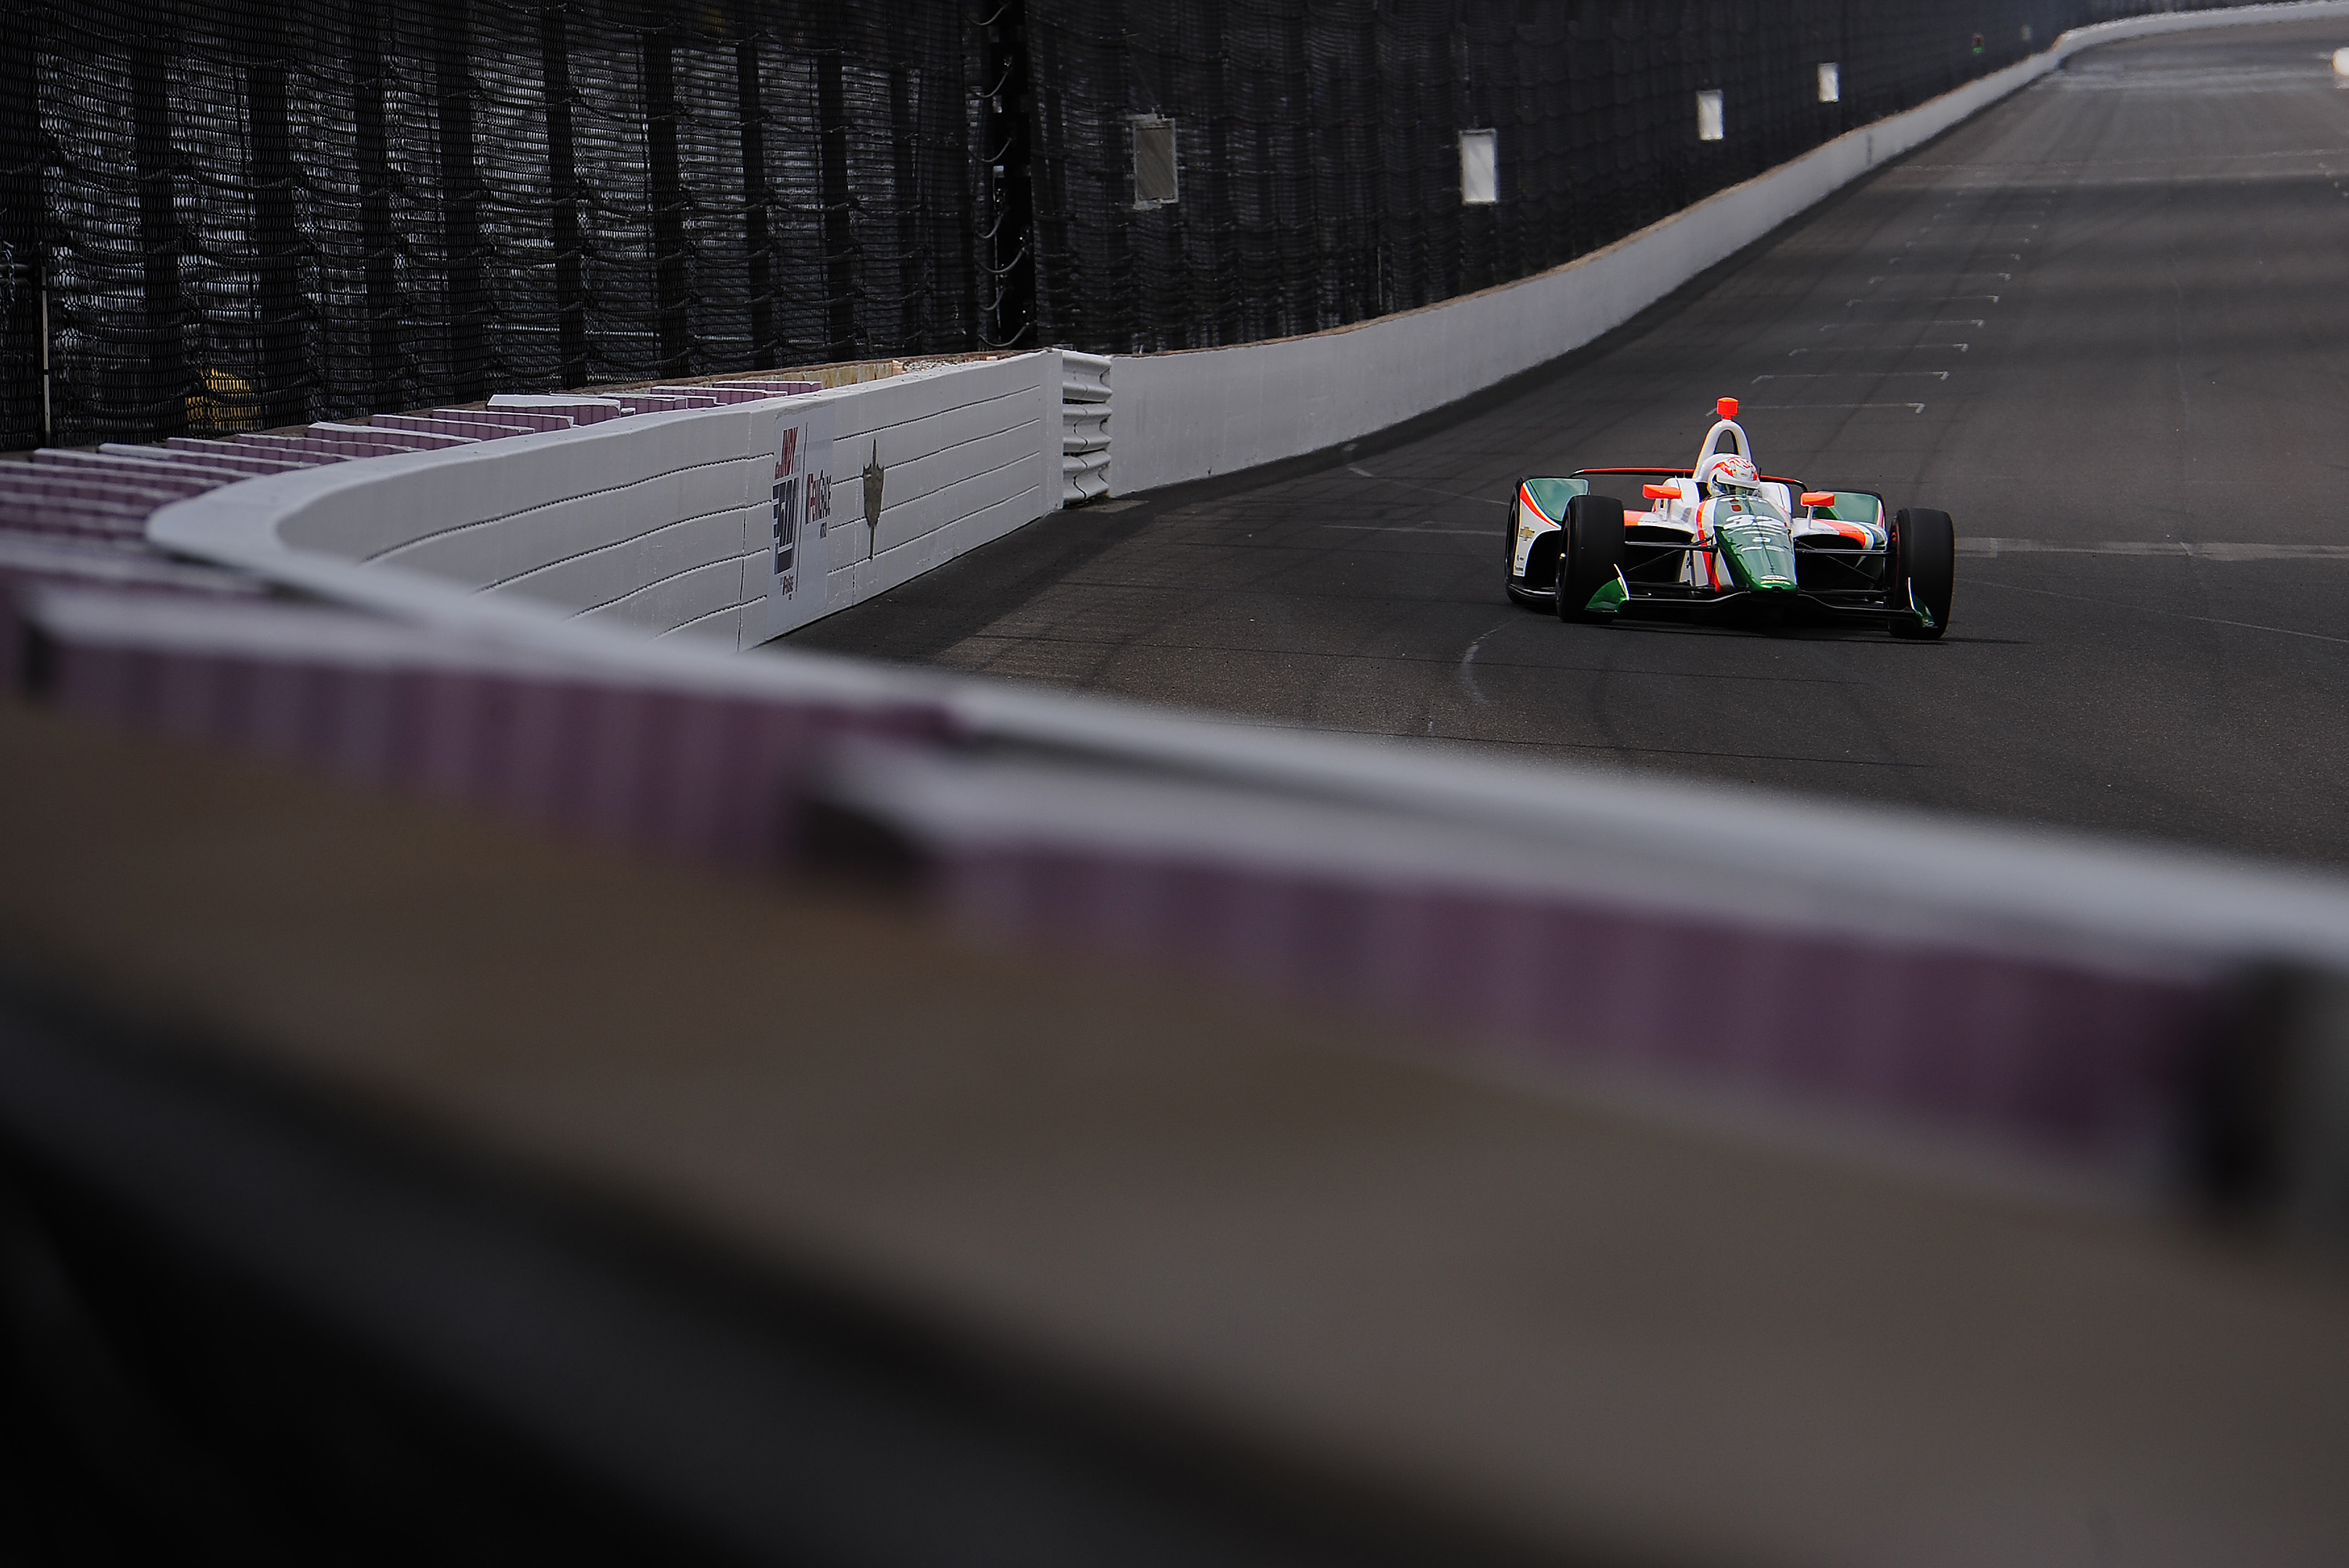 AUTO: MAY 20 IndyCar Series - Indianapolis 500 Pole Day